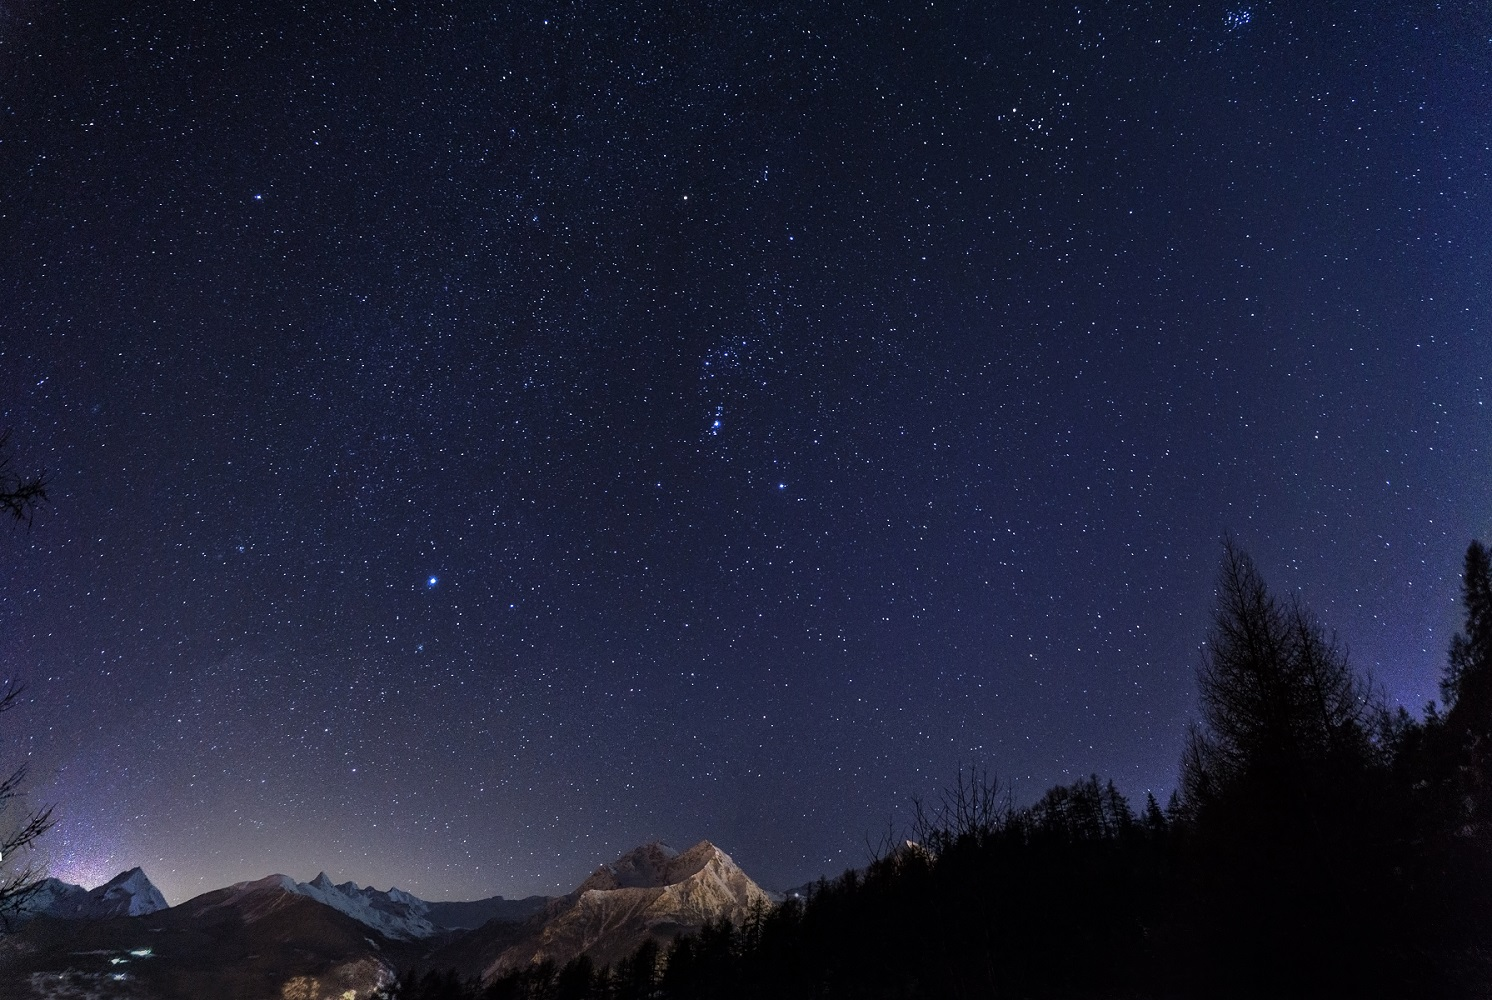 First attempt to photograph the Milky Way ......